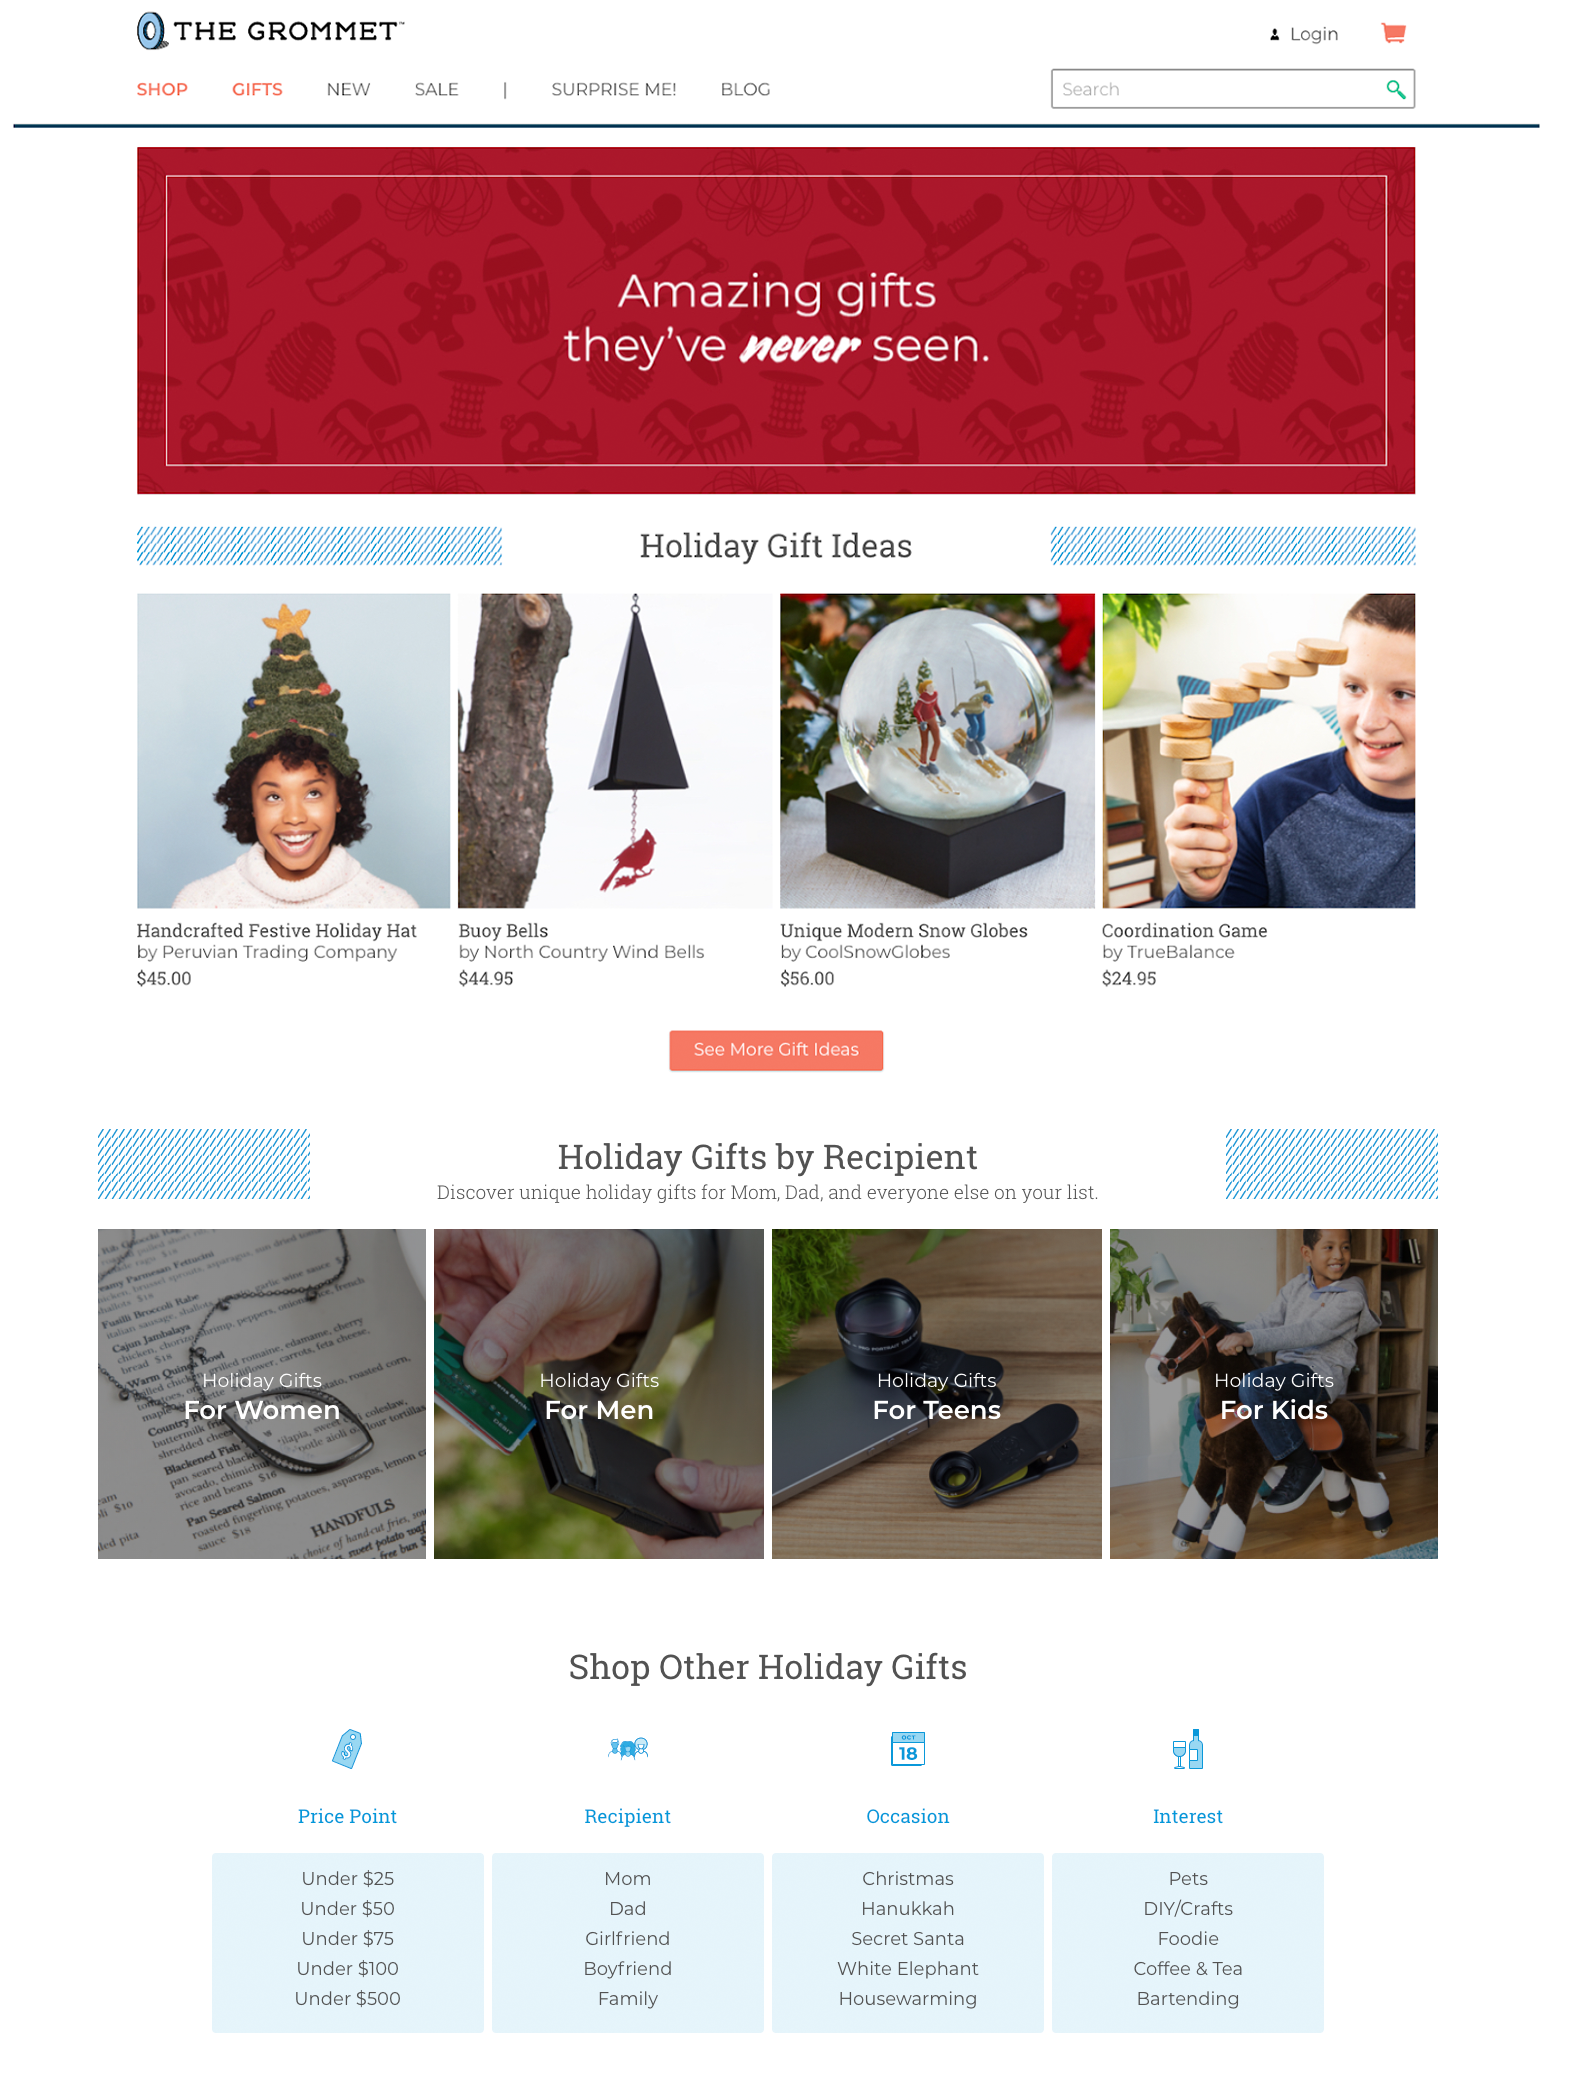 The Grommet's gift guide lets shoppers browse gift ideas by recipient, price point, and interest